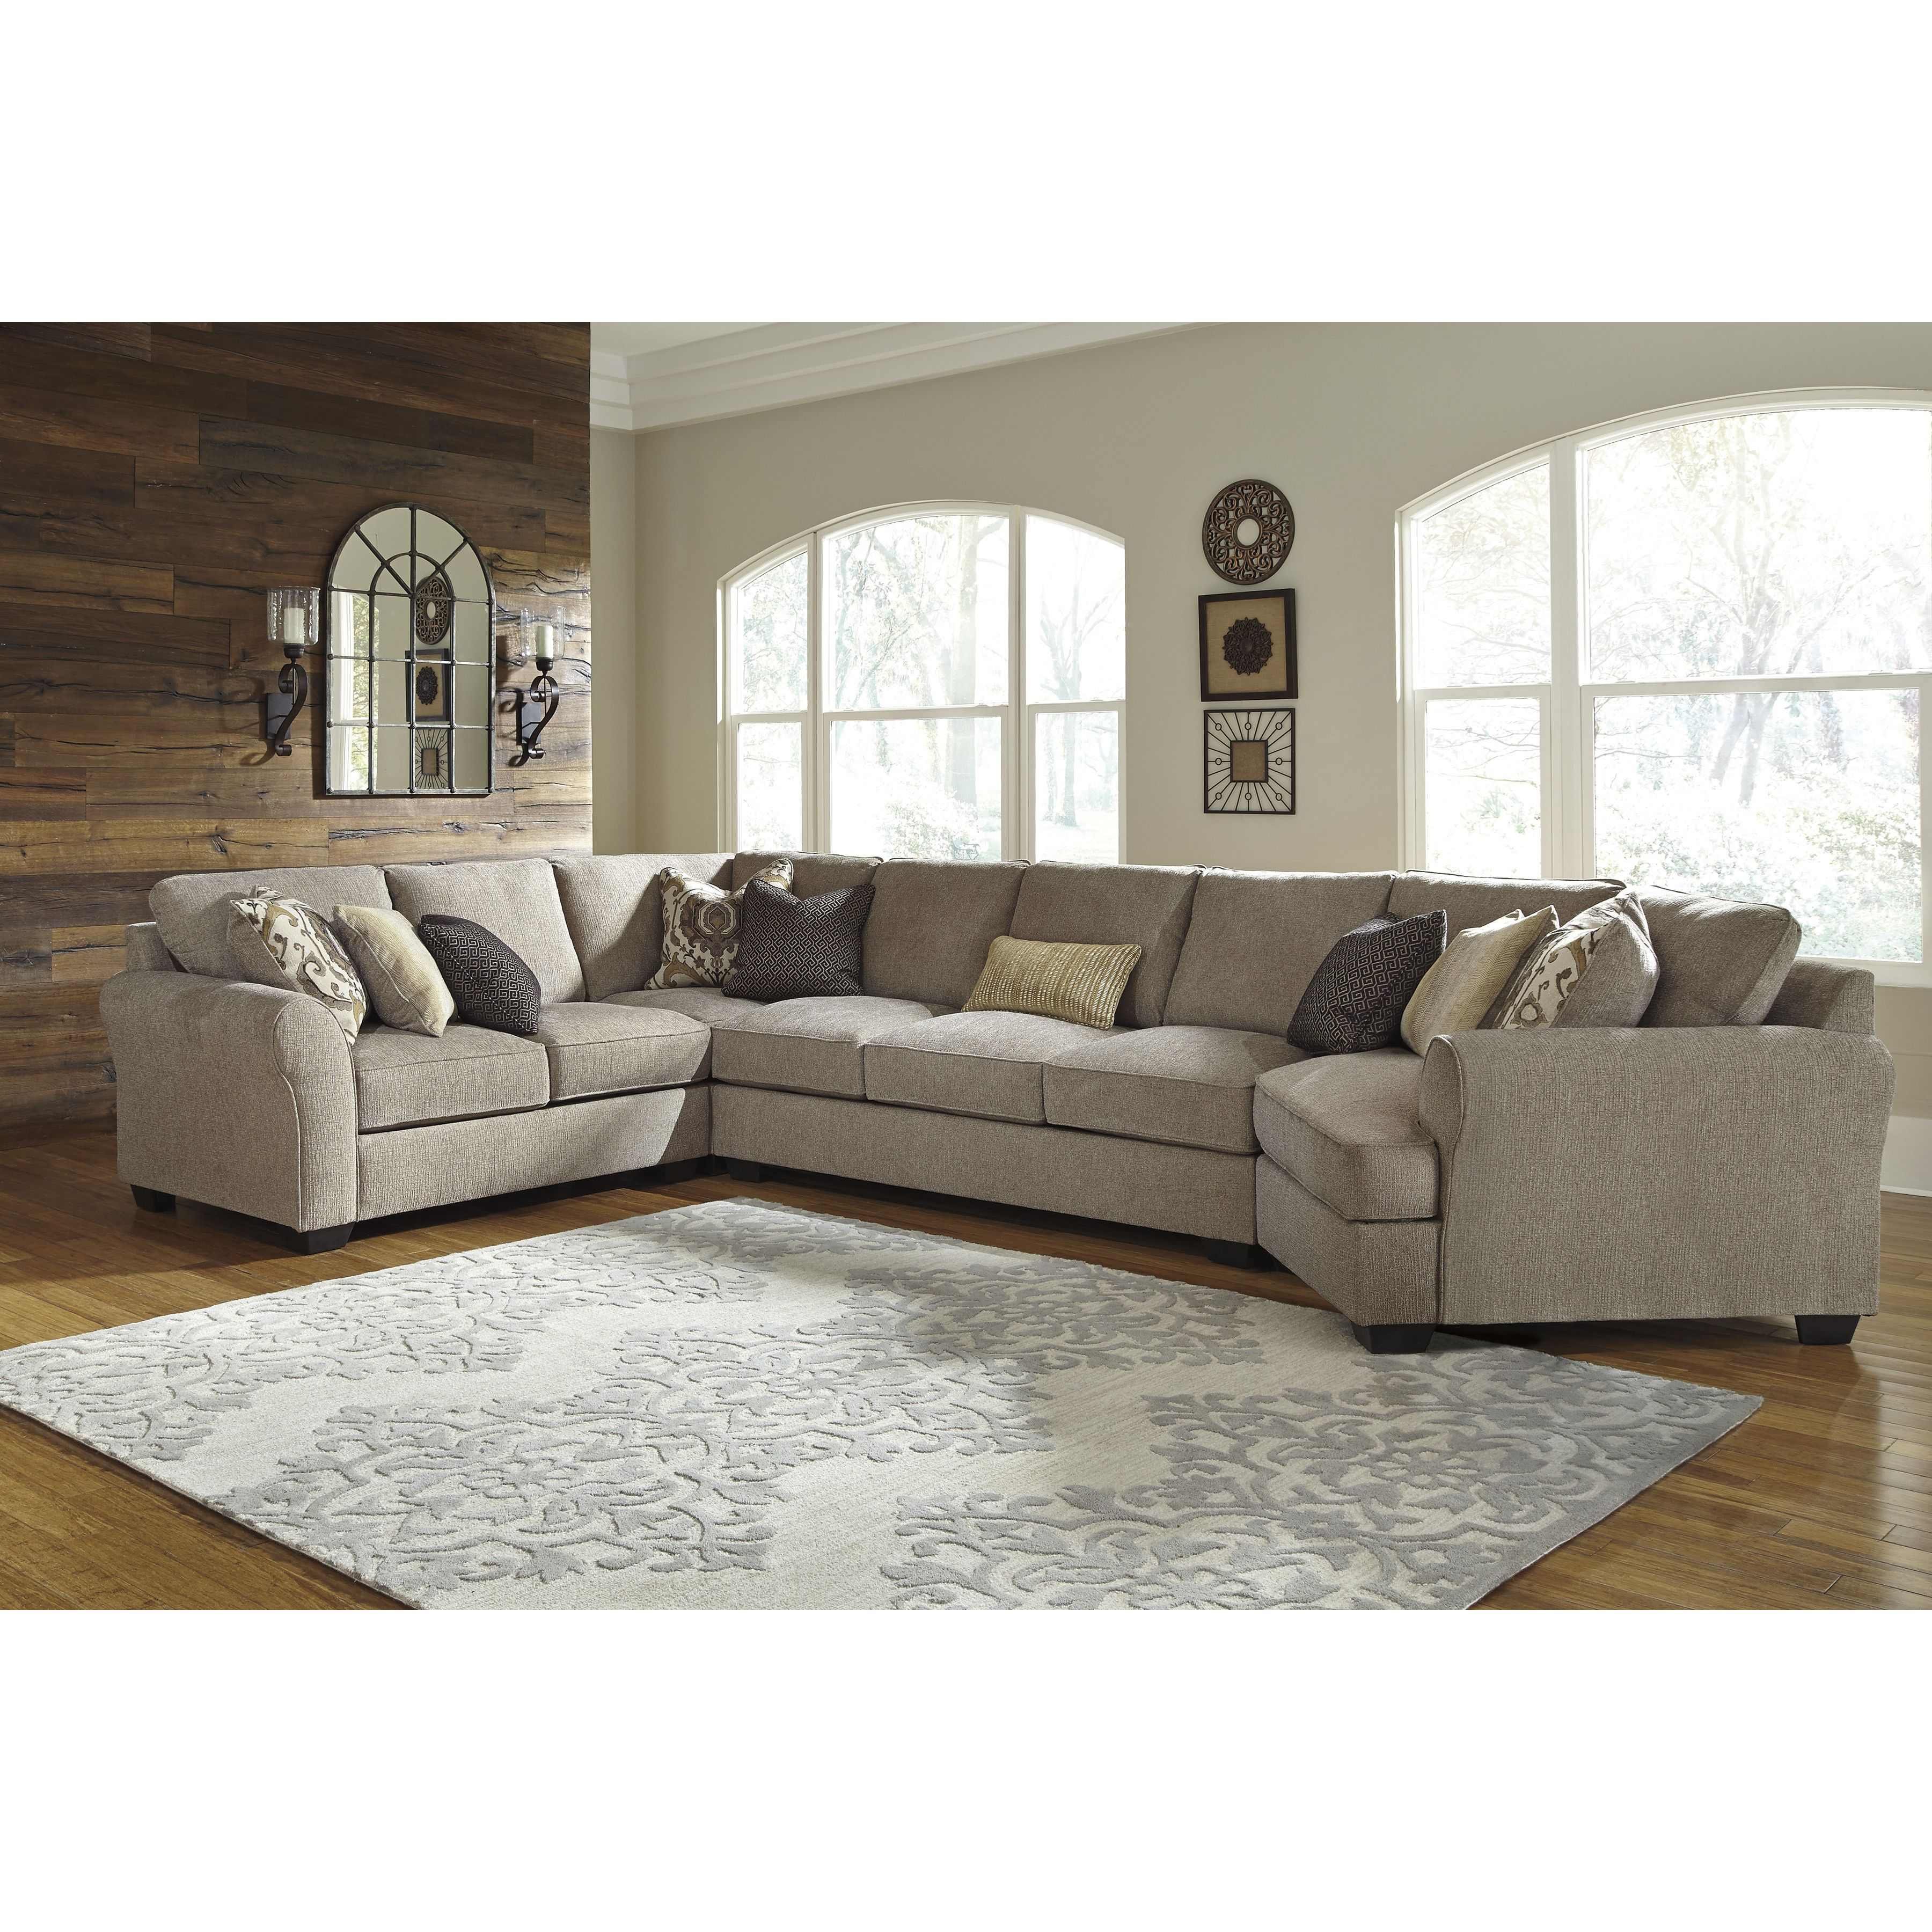 sectional couch leather of full recliner cuddler orion shaped power u fabric on best couches costco roomgreat the chaise ideas sofa with living size beautiful